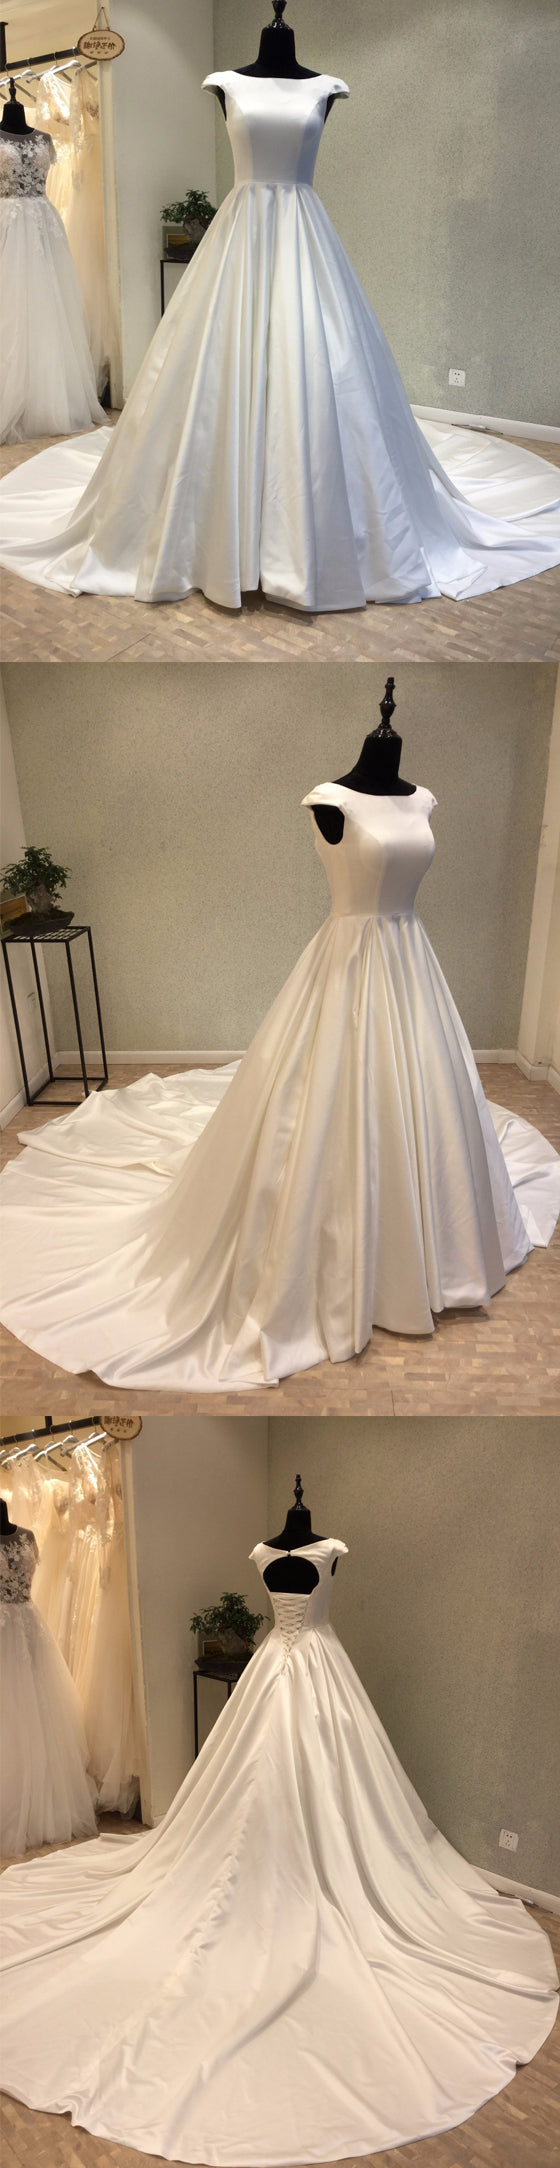 Cap Sleeves Simple Satin Open Back Lace Up Back Cheap Wedding Dress, WG698